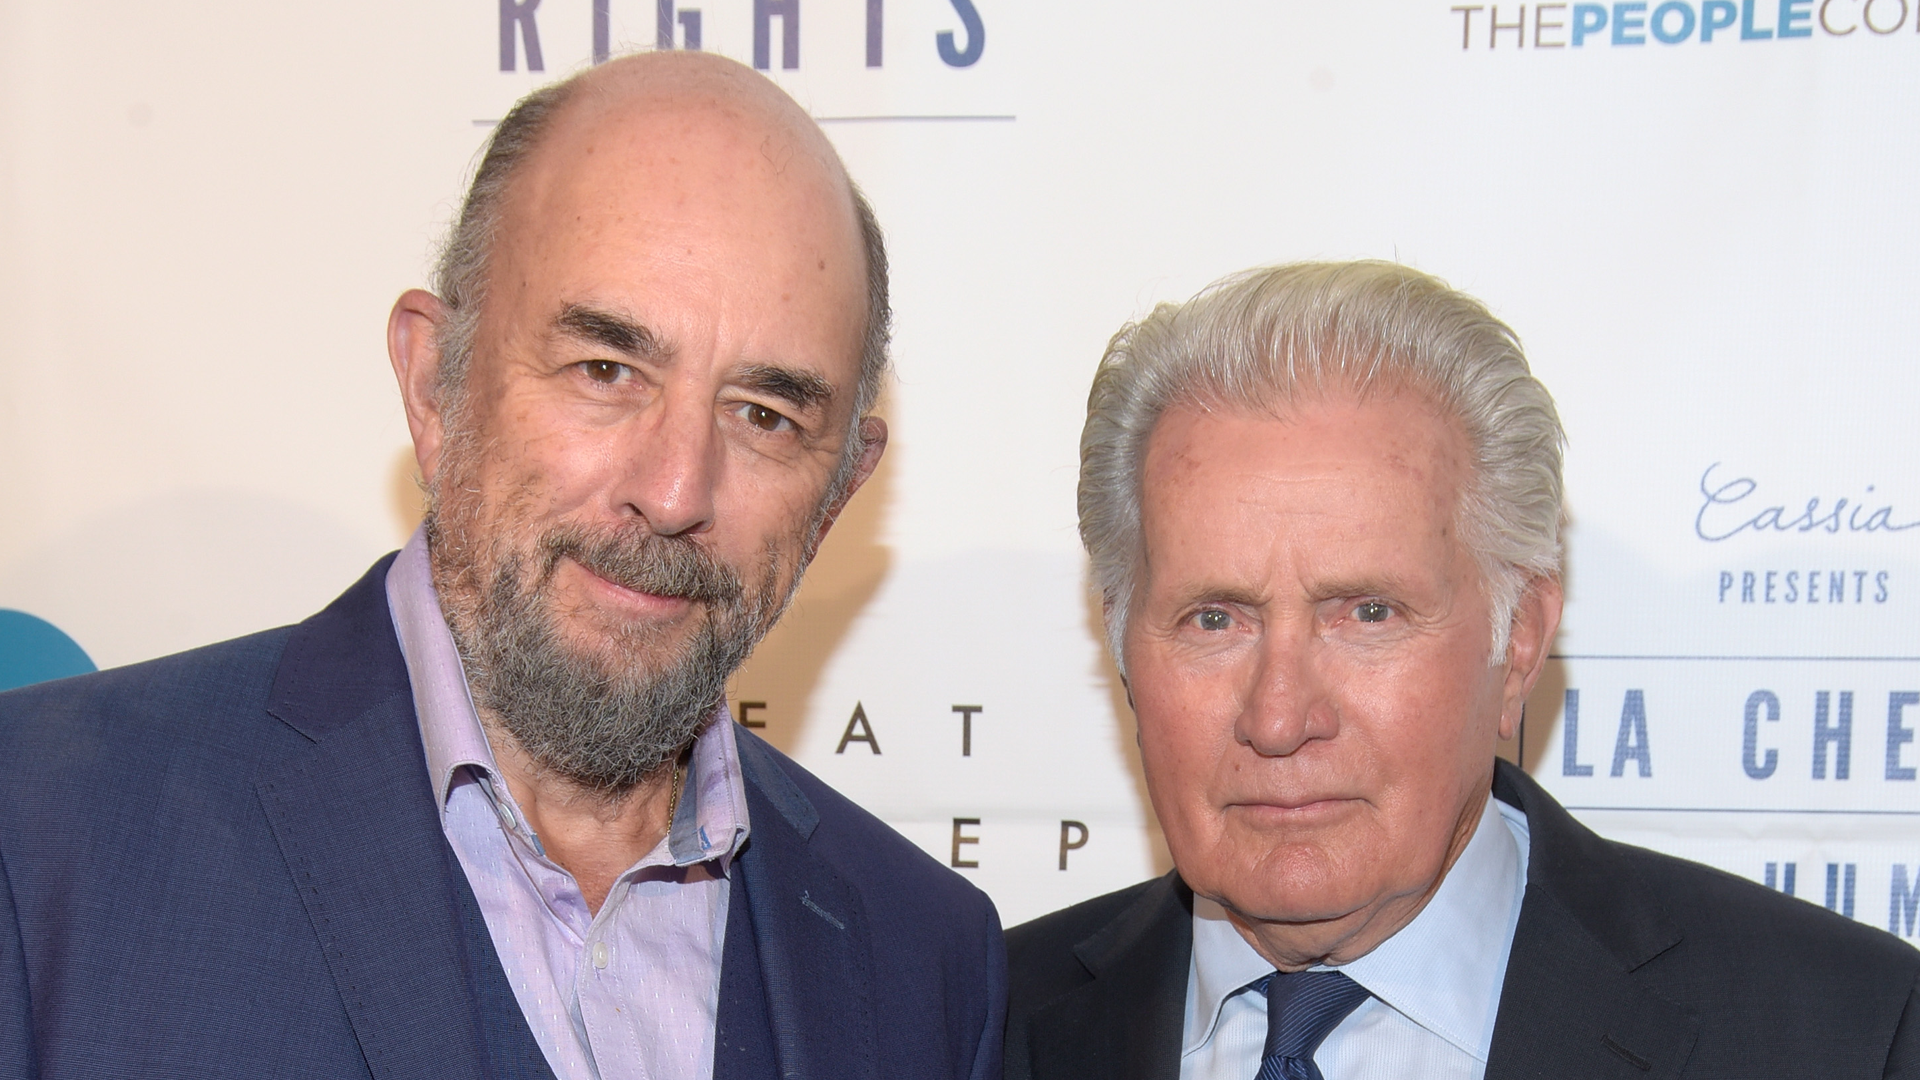 'West Wing' star describes dark days while in the hospital for COVID-19: 'It didn't look good'